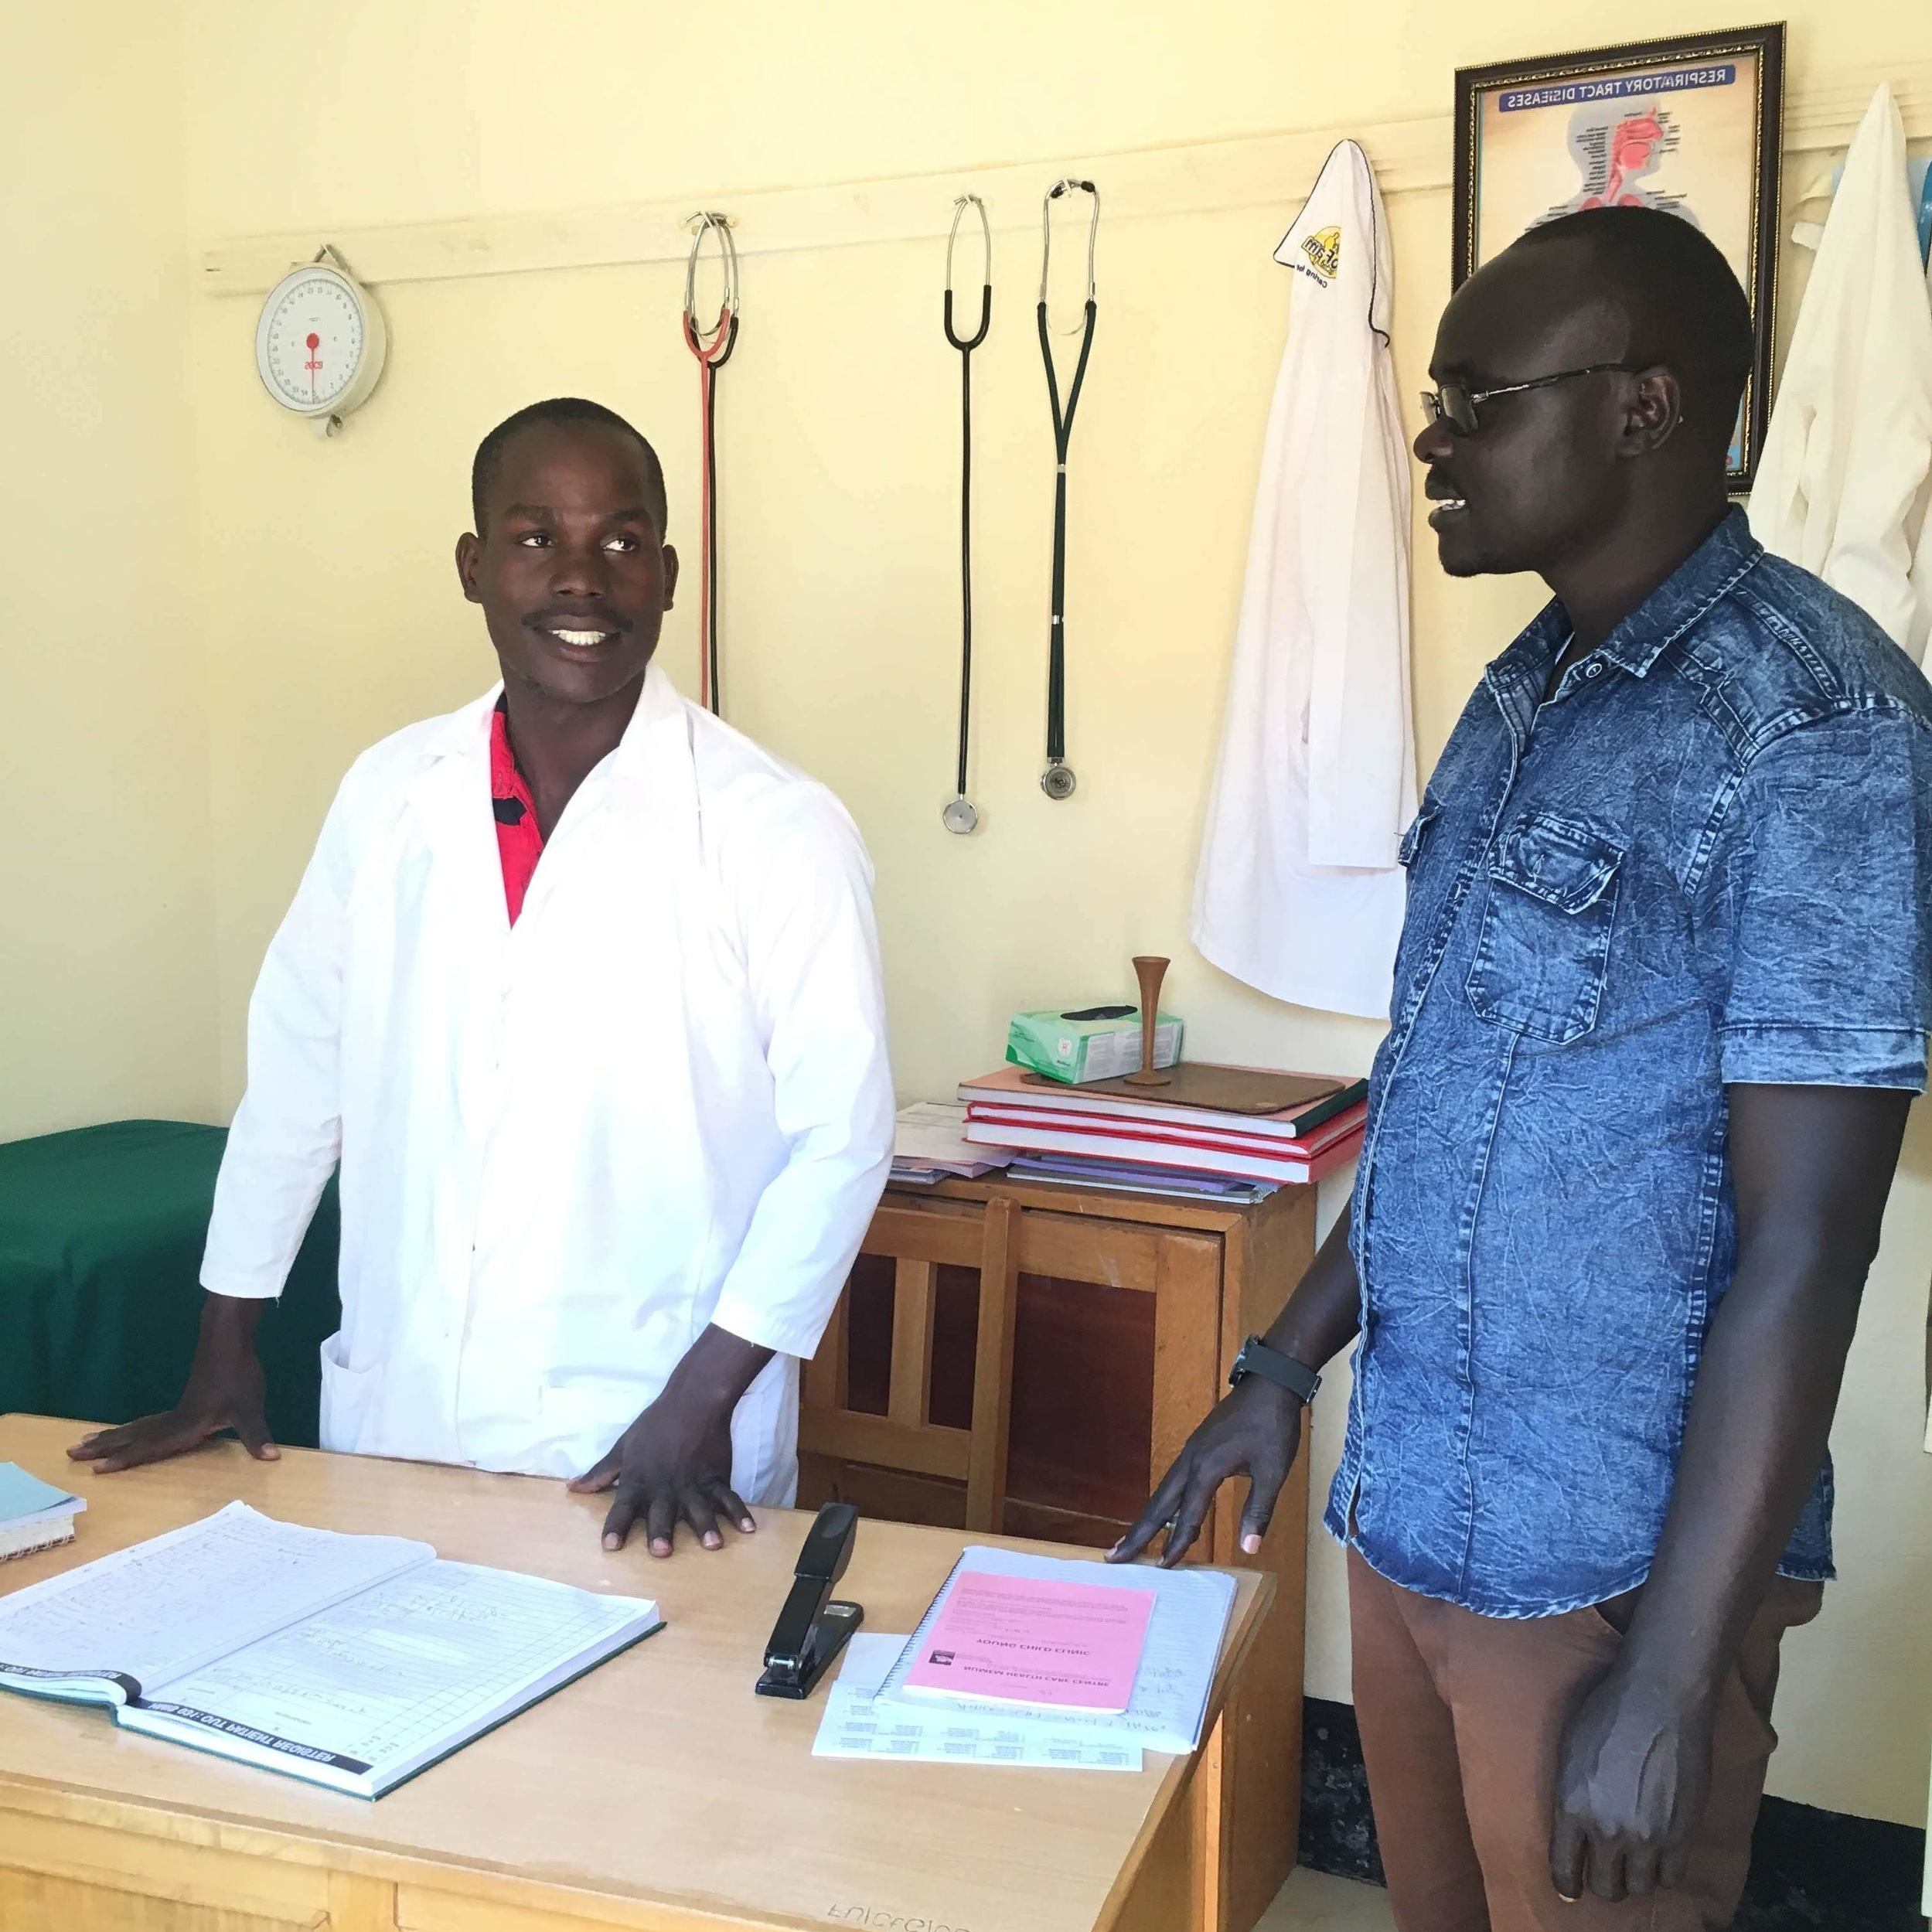 Co-founder, Oyet Patrick (right), discusses with head clinical officer, Opiyo Morish (left), about the lack of healthcare providers in Northern Uganda as one of the reasons for poor access to quality health care.